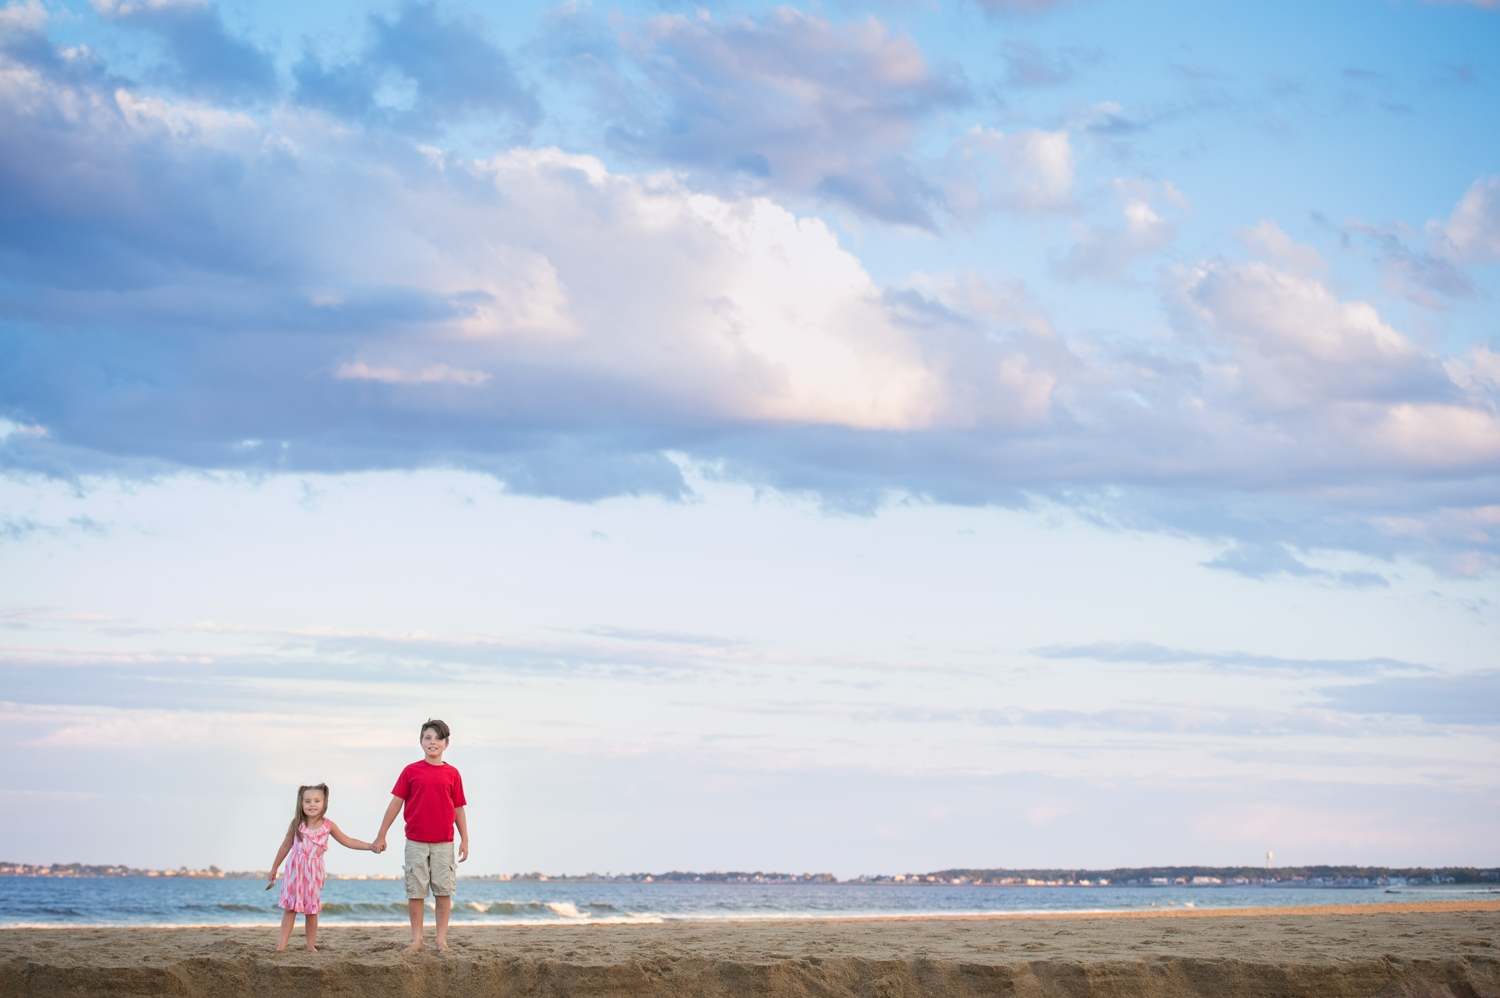 Maine Family Portraits - Old Orchard Beach Family Photographer - 1.jpg